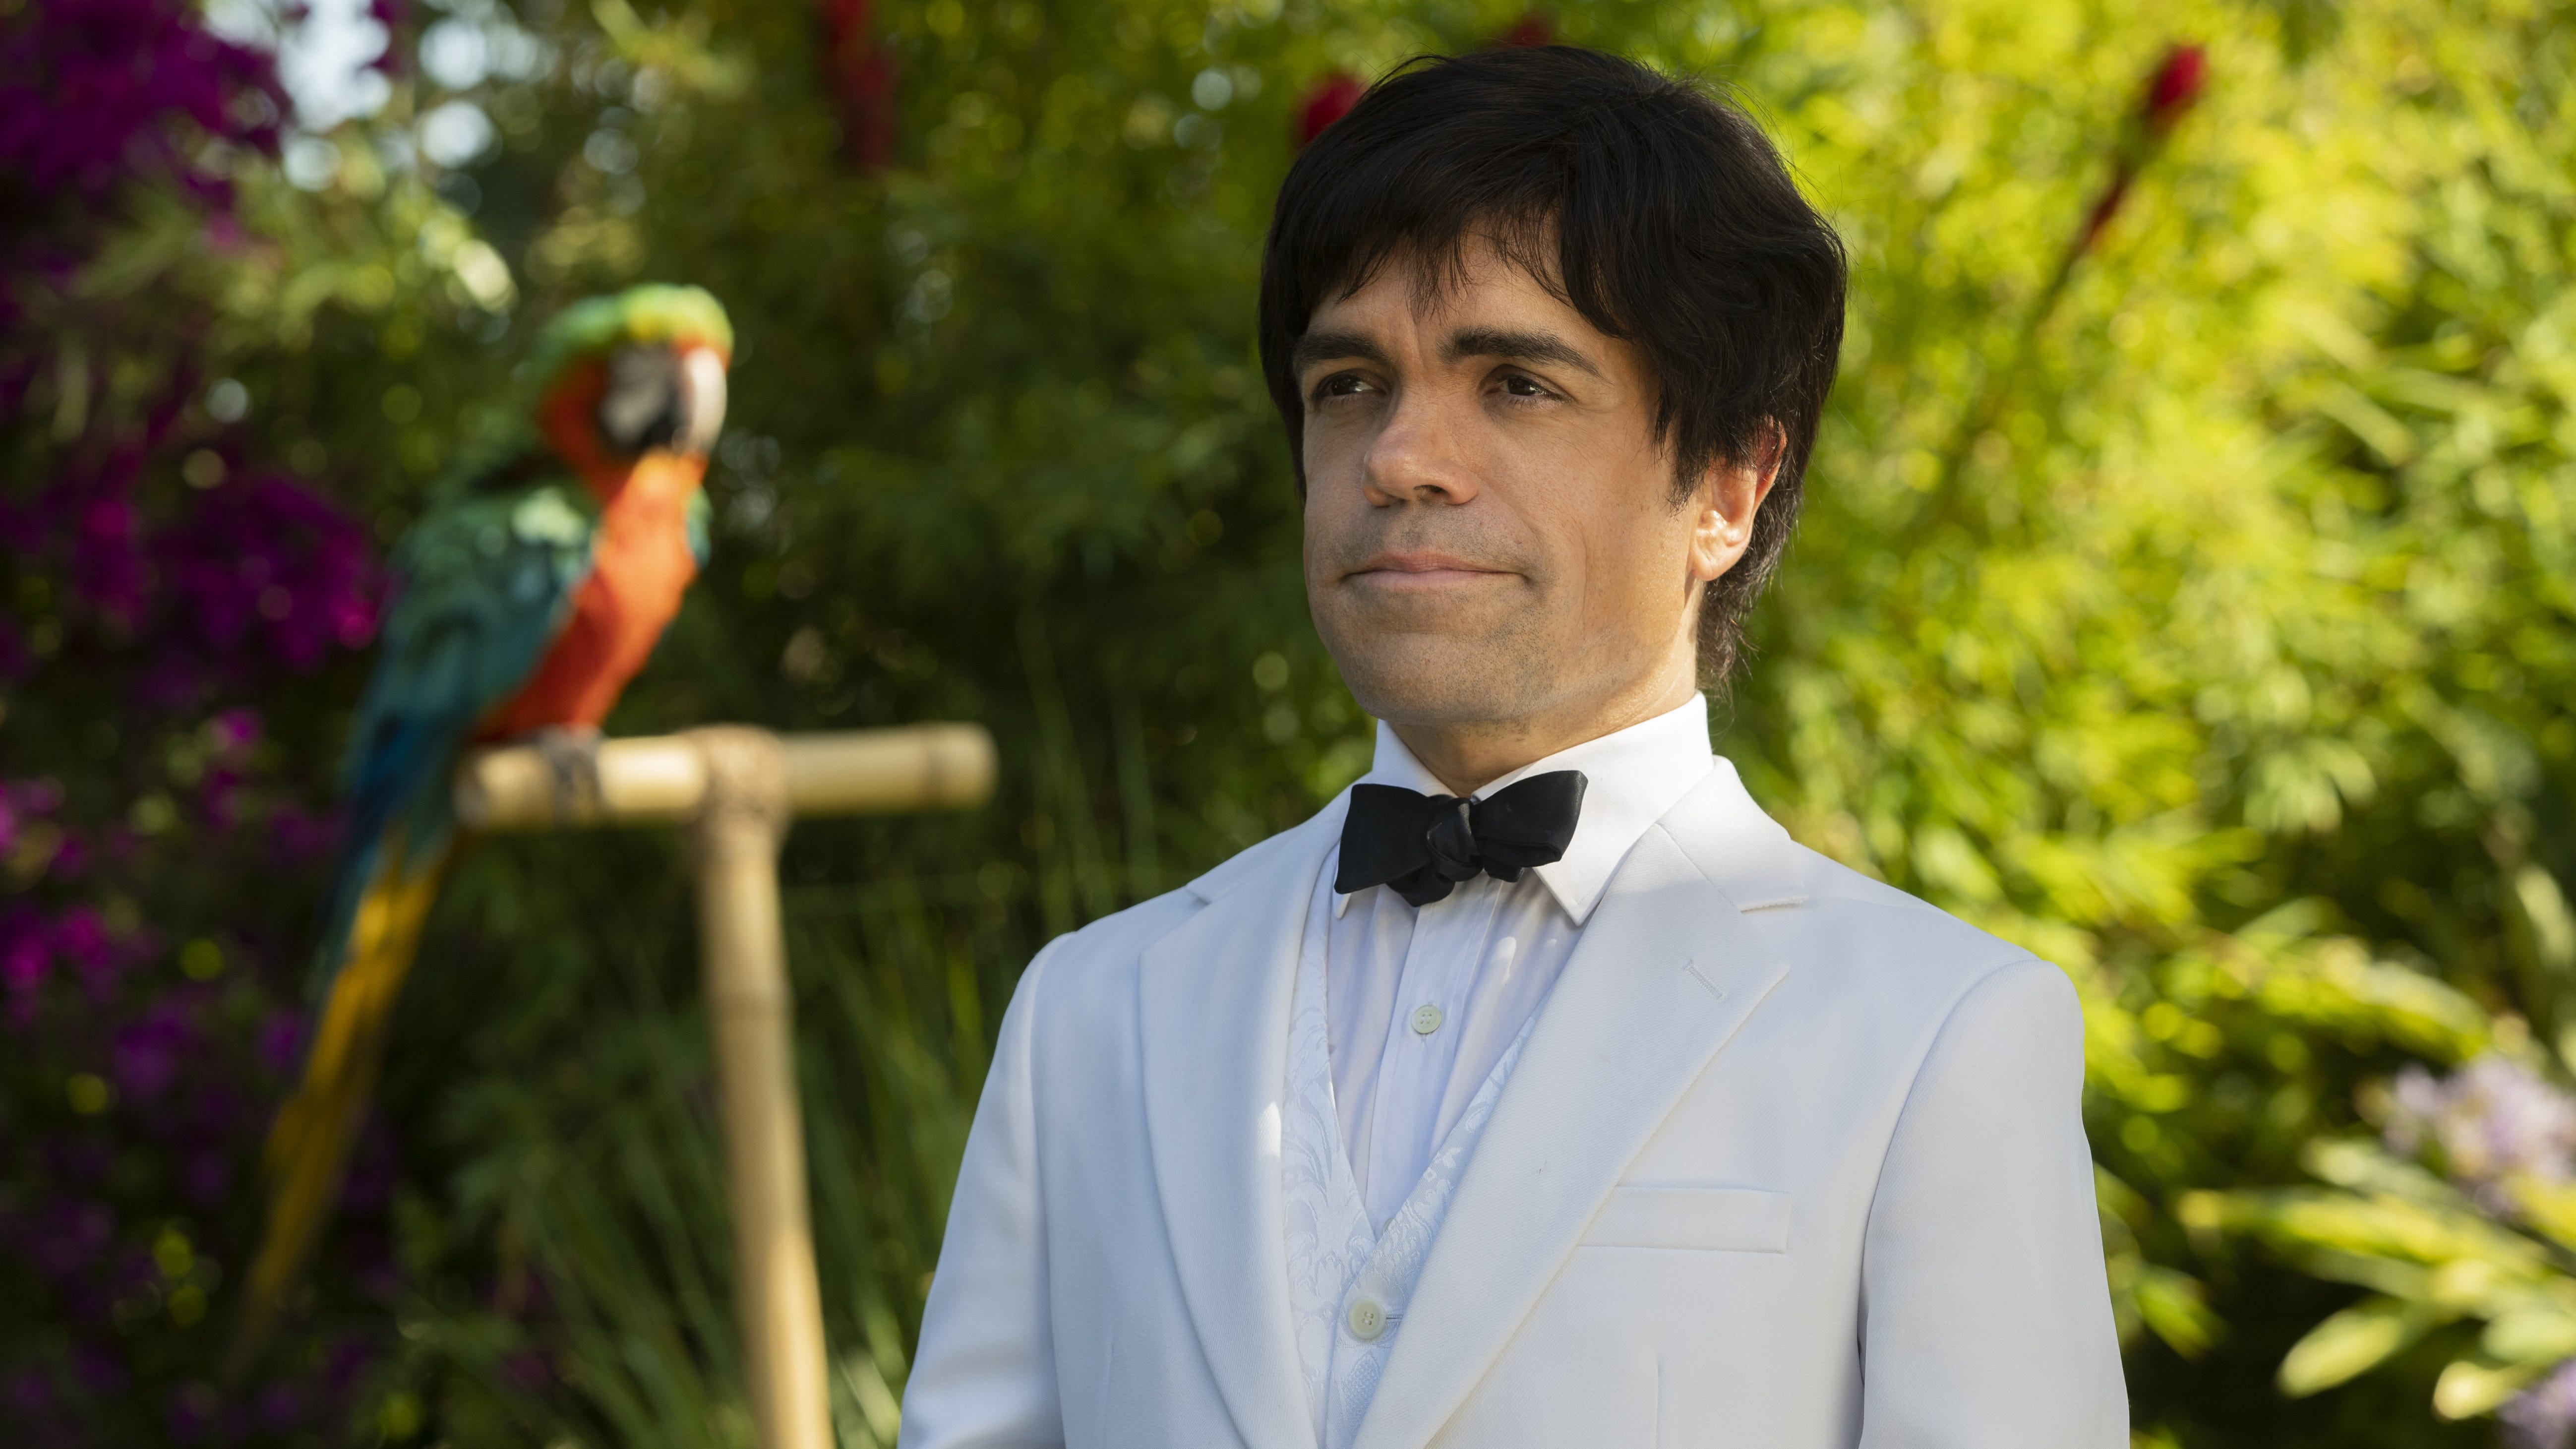 Peter Dinklage of 'GoT' stars in HBO film 'My Dinner with Herve'